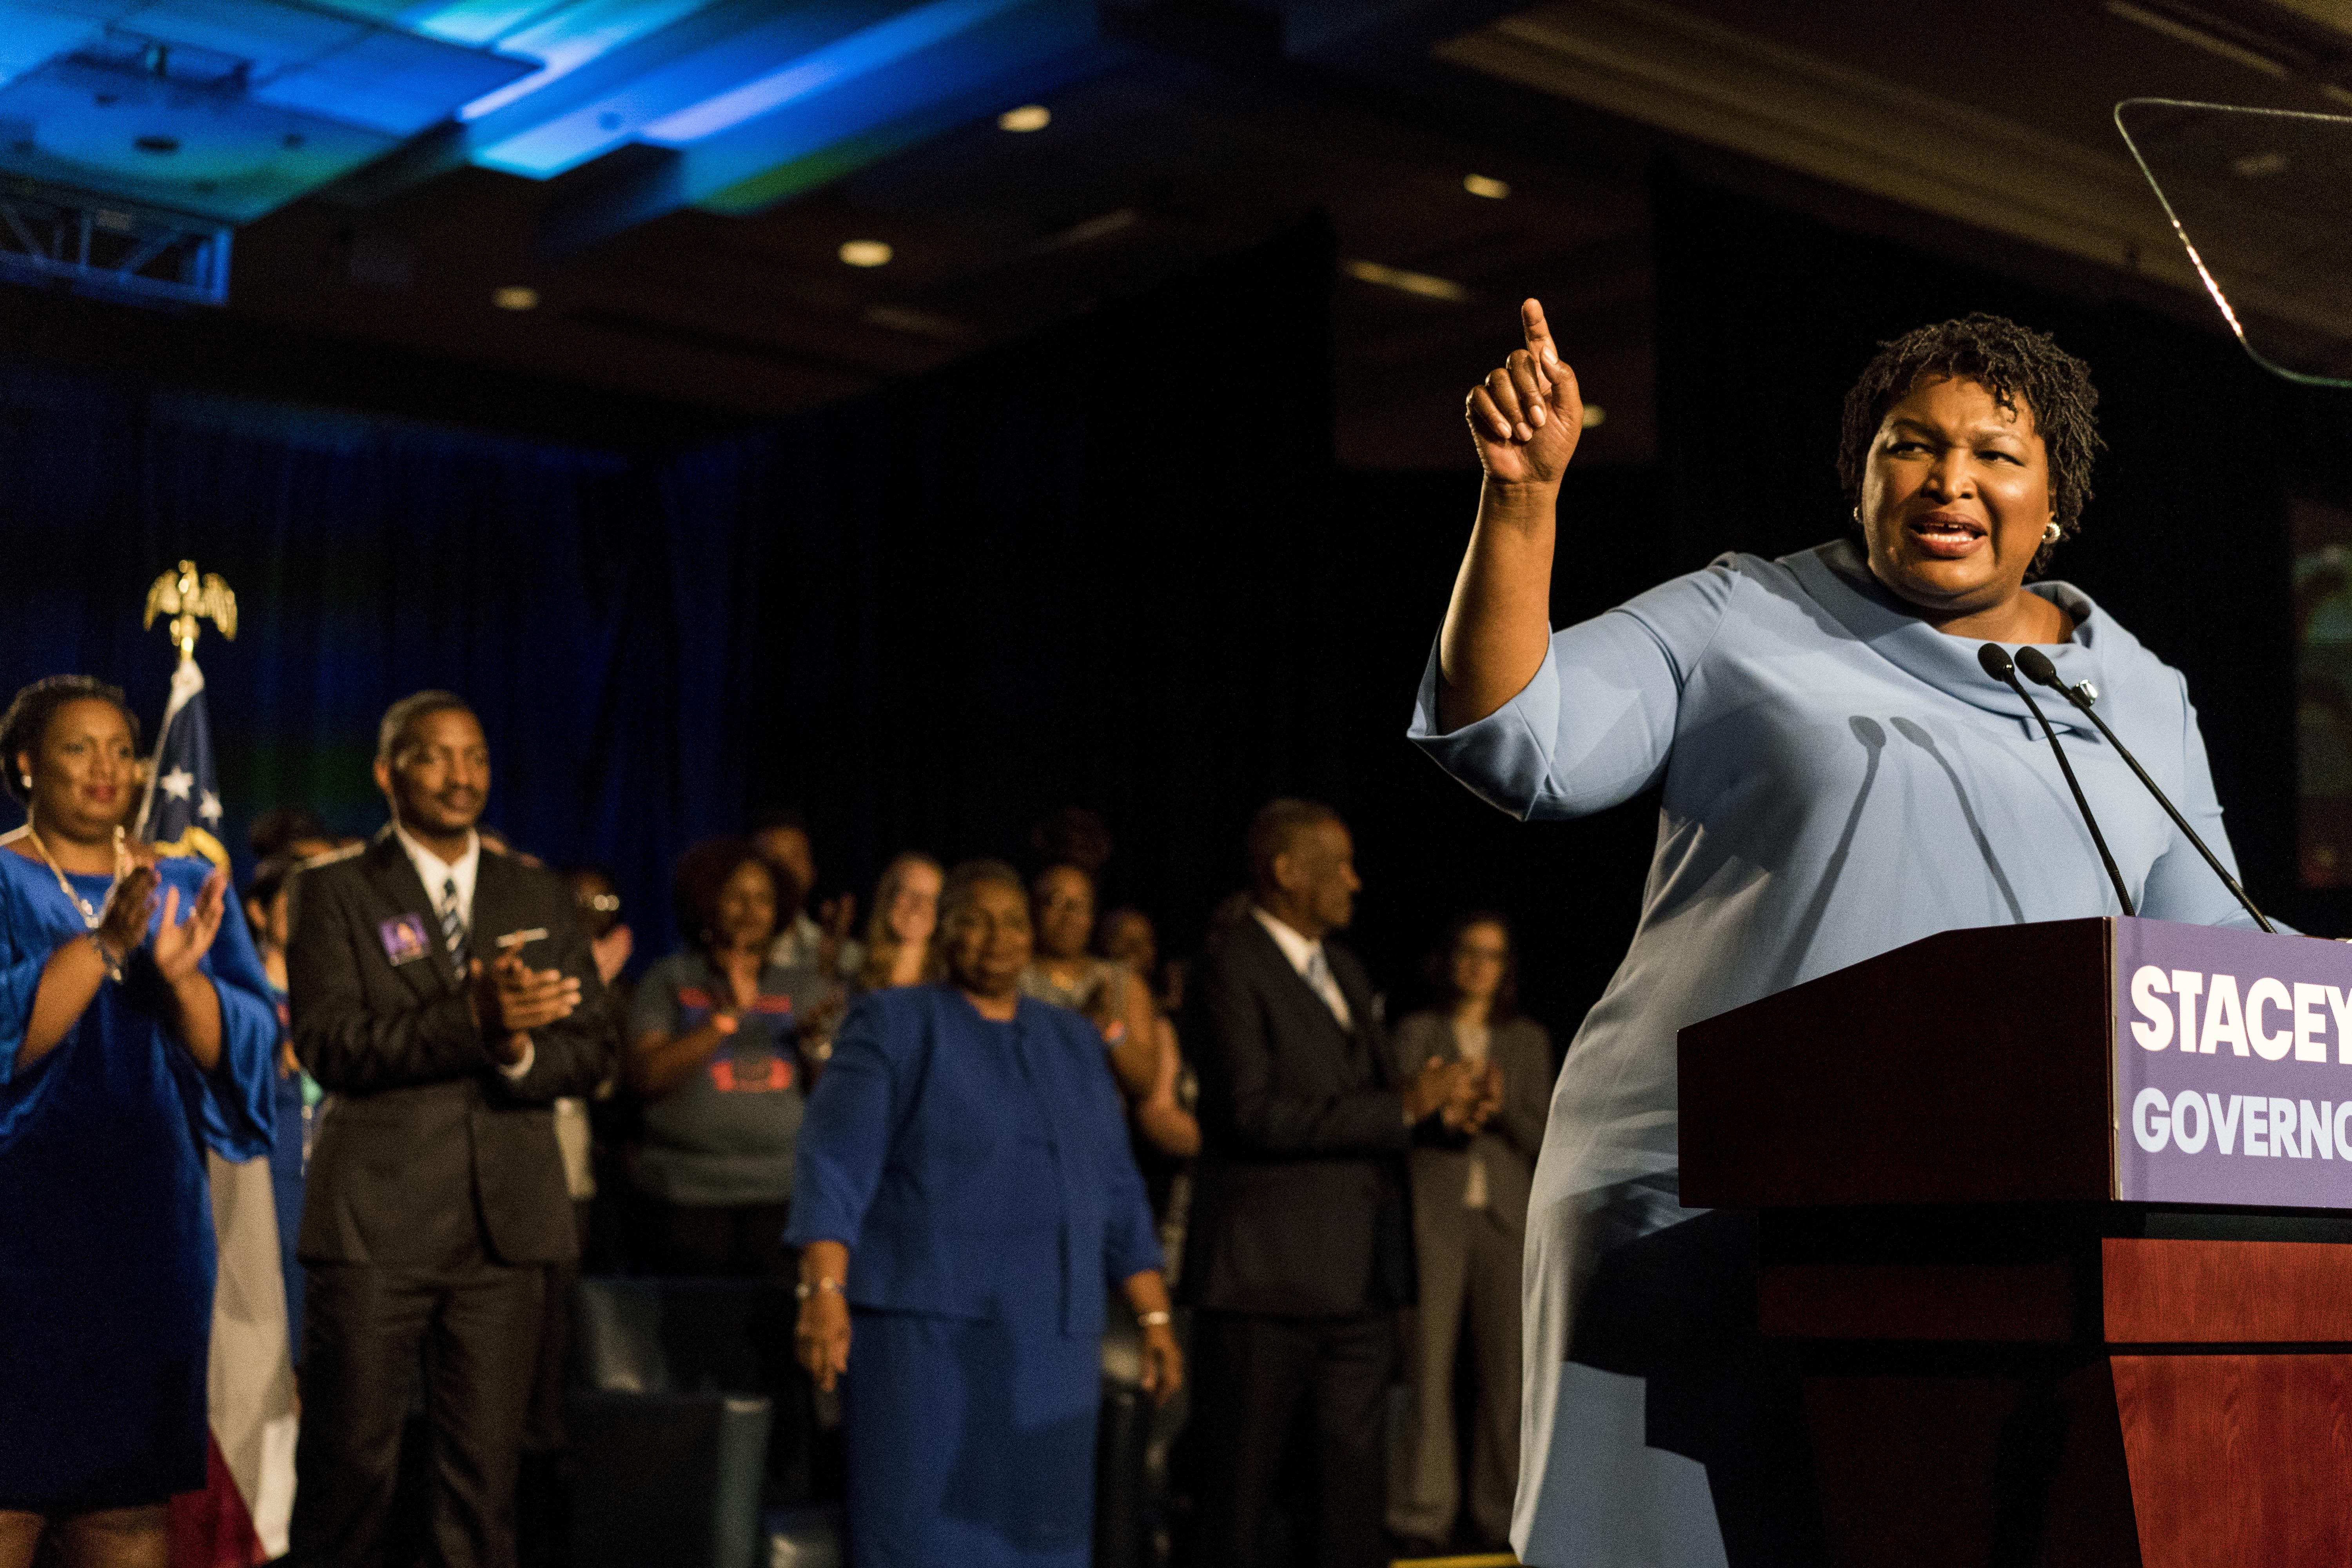 Stacey Abrams, the Democratic candidate for governor in Georgia, is trying to force a runoff with her opponent. (Melina Mara/The Washington Post)